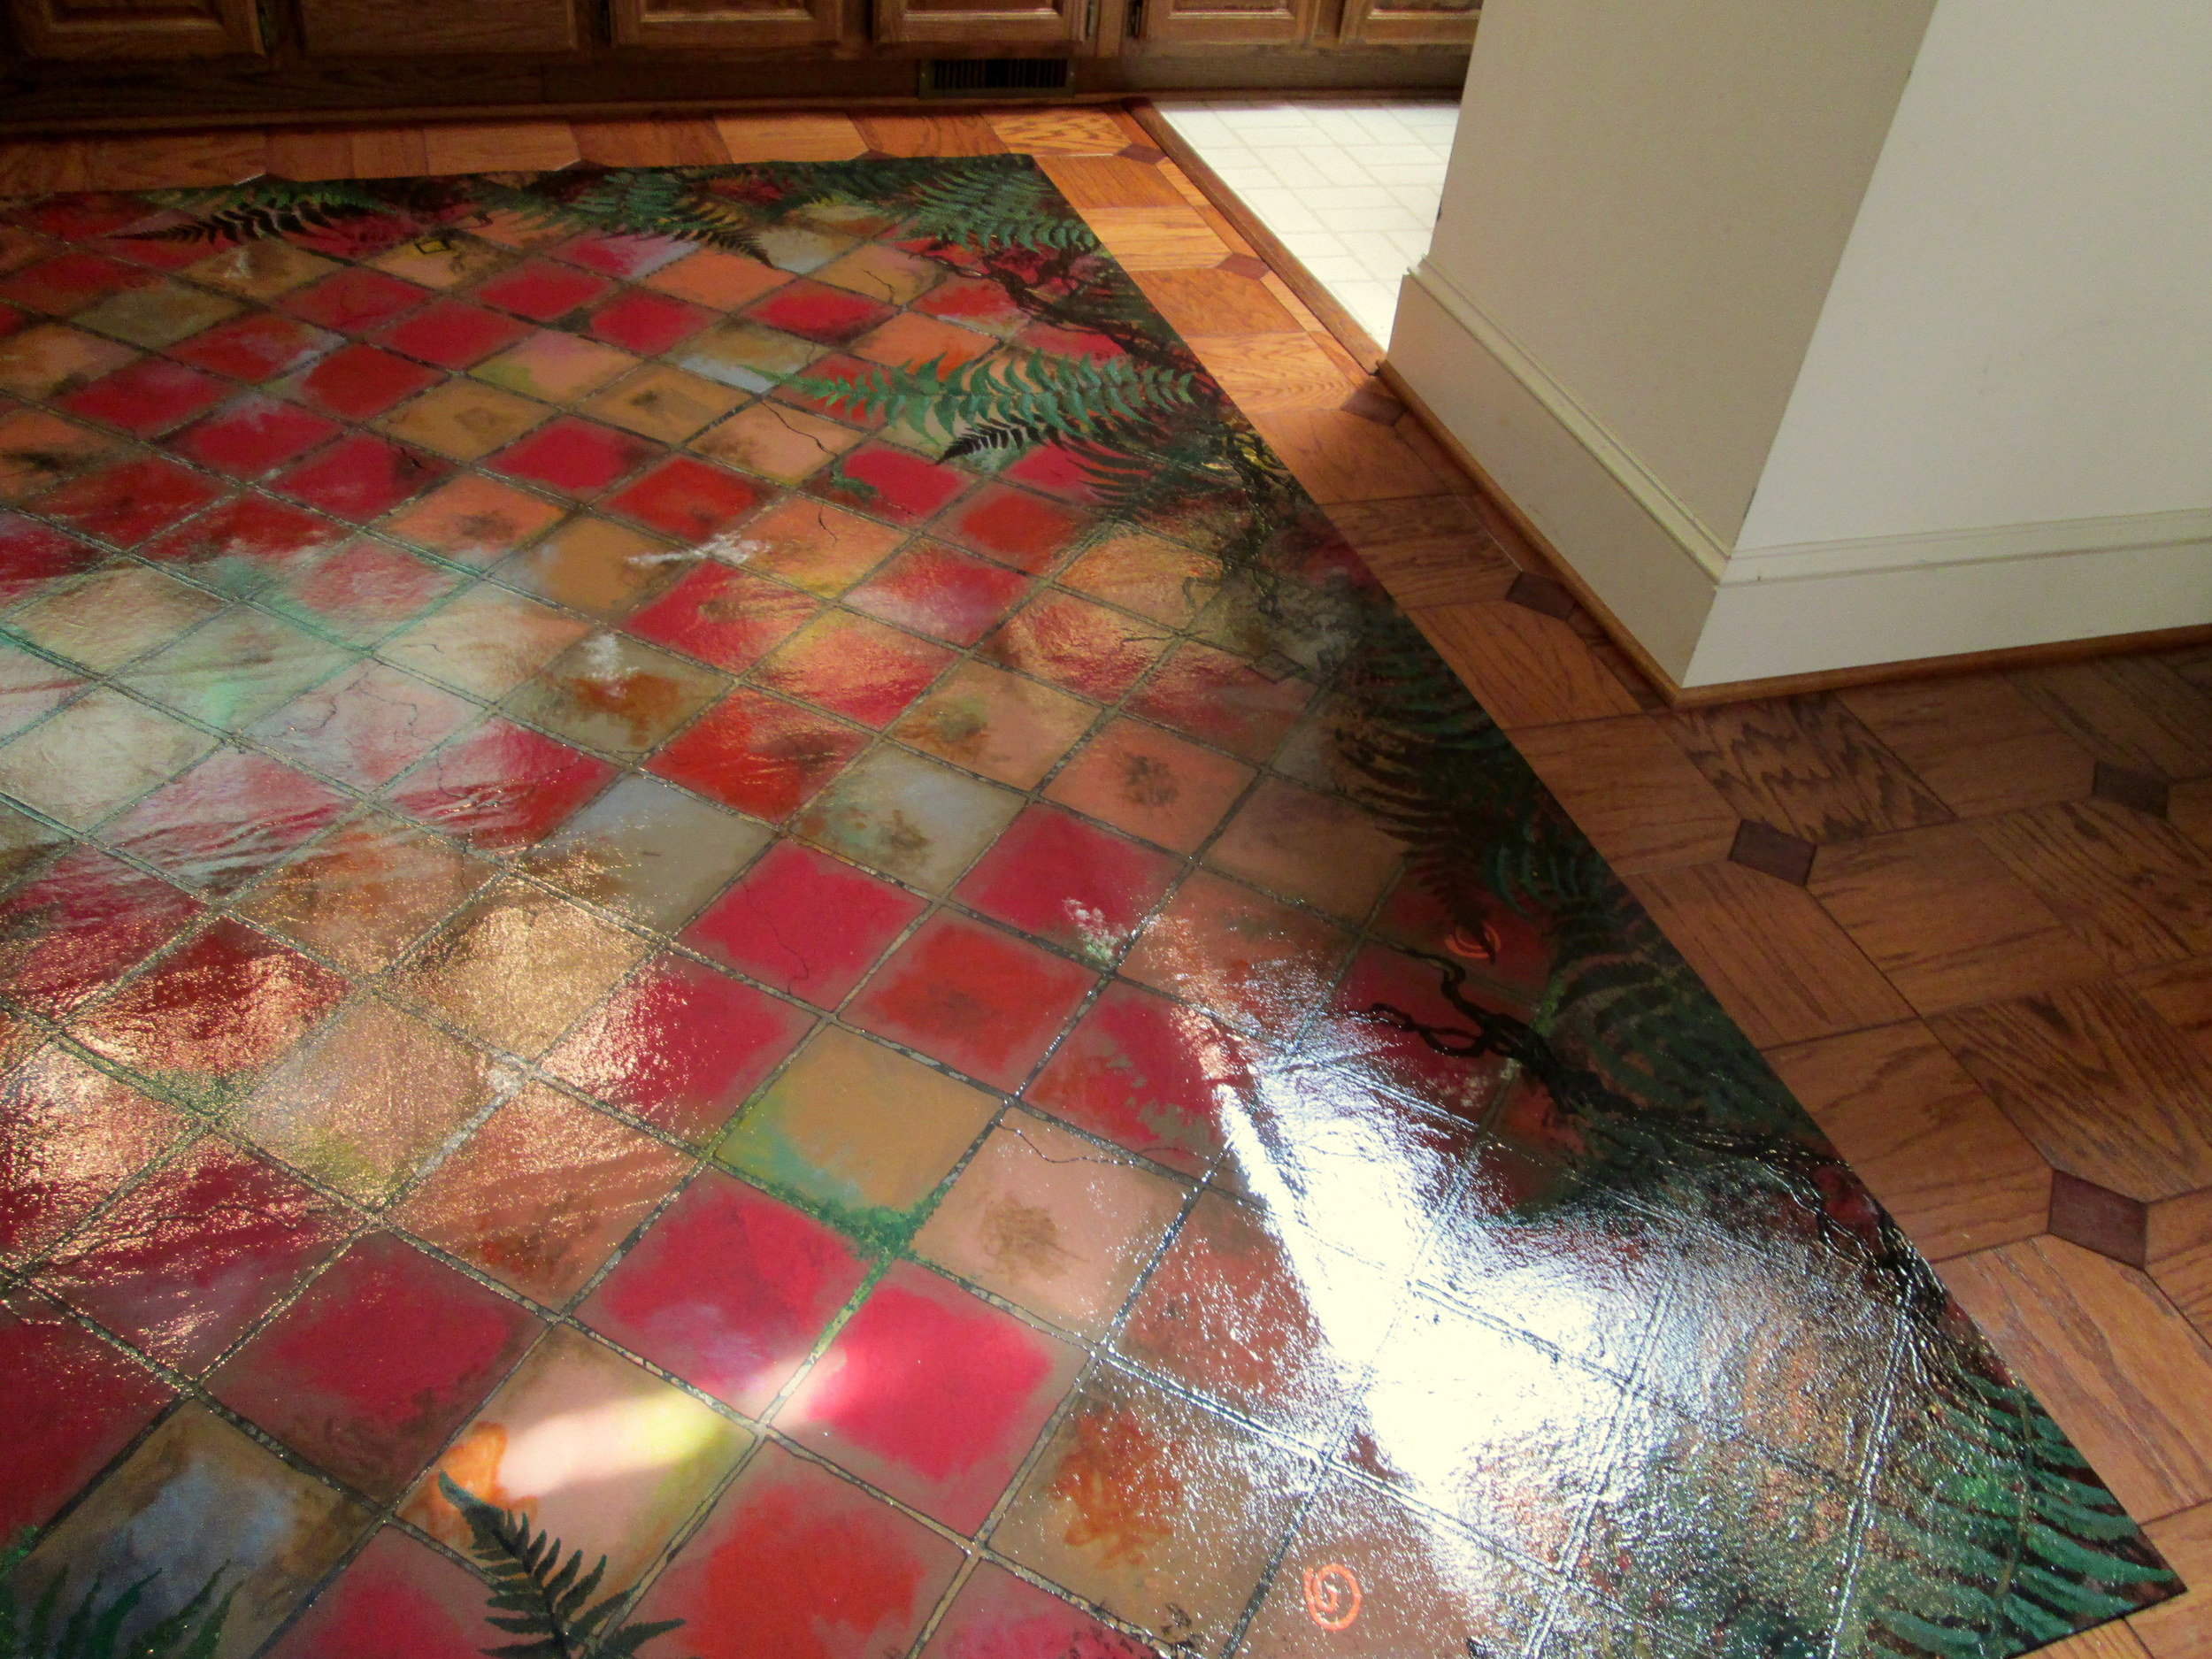 Painted floorcloths or canvas rugs for dining rooms